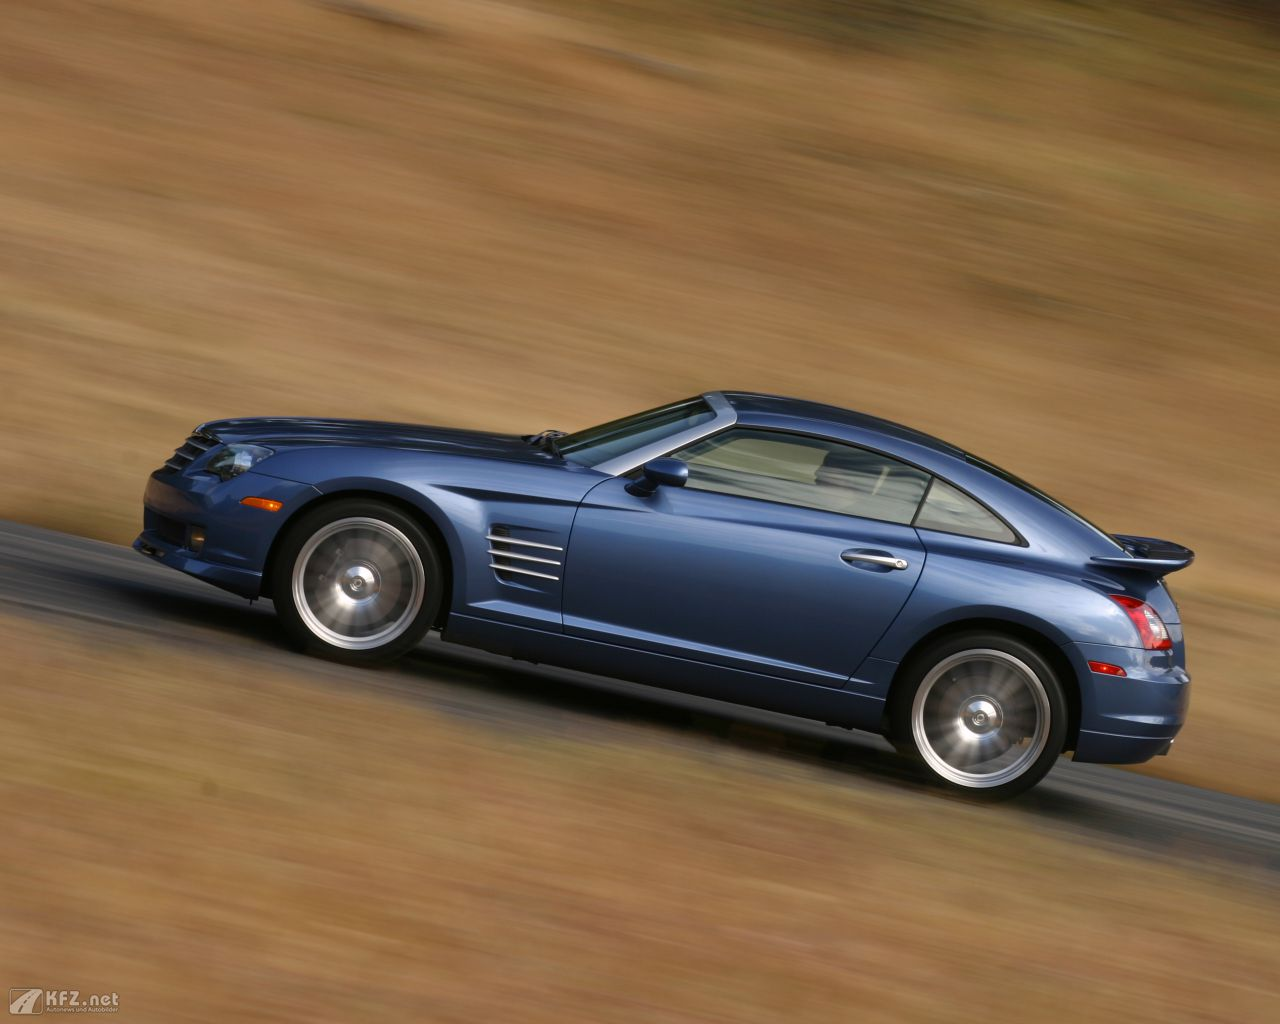 chrysler-crossfire-1280x1024-9